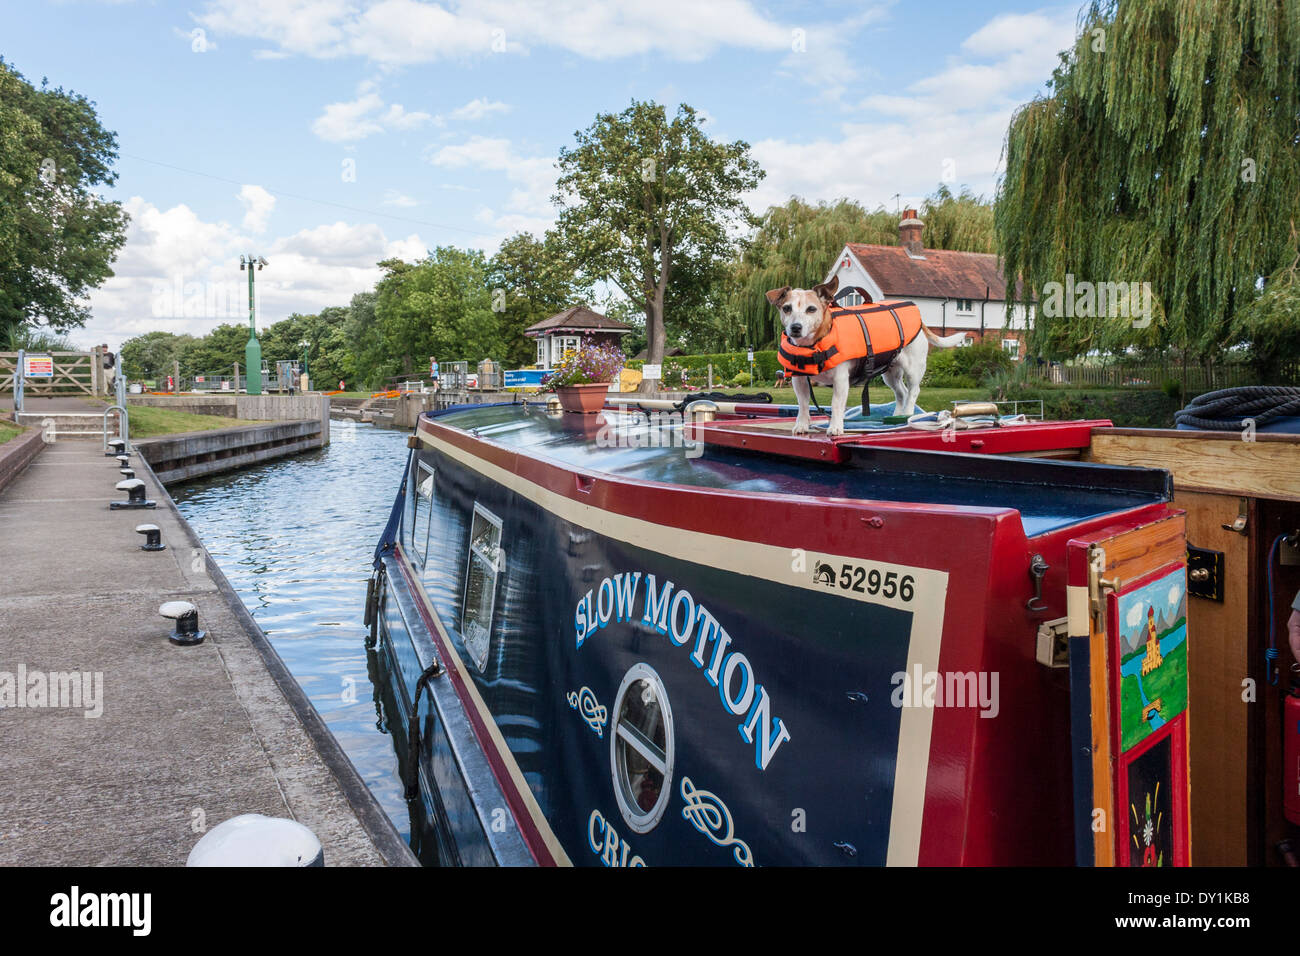 Terrier dog on roof of narrowboat moving into Boveney Lock, Bucksinghamshire. - Stock Image